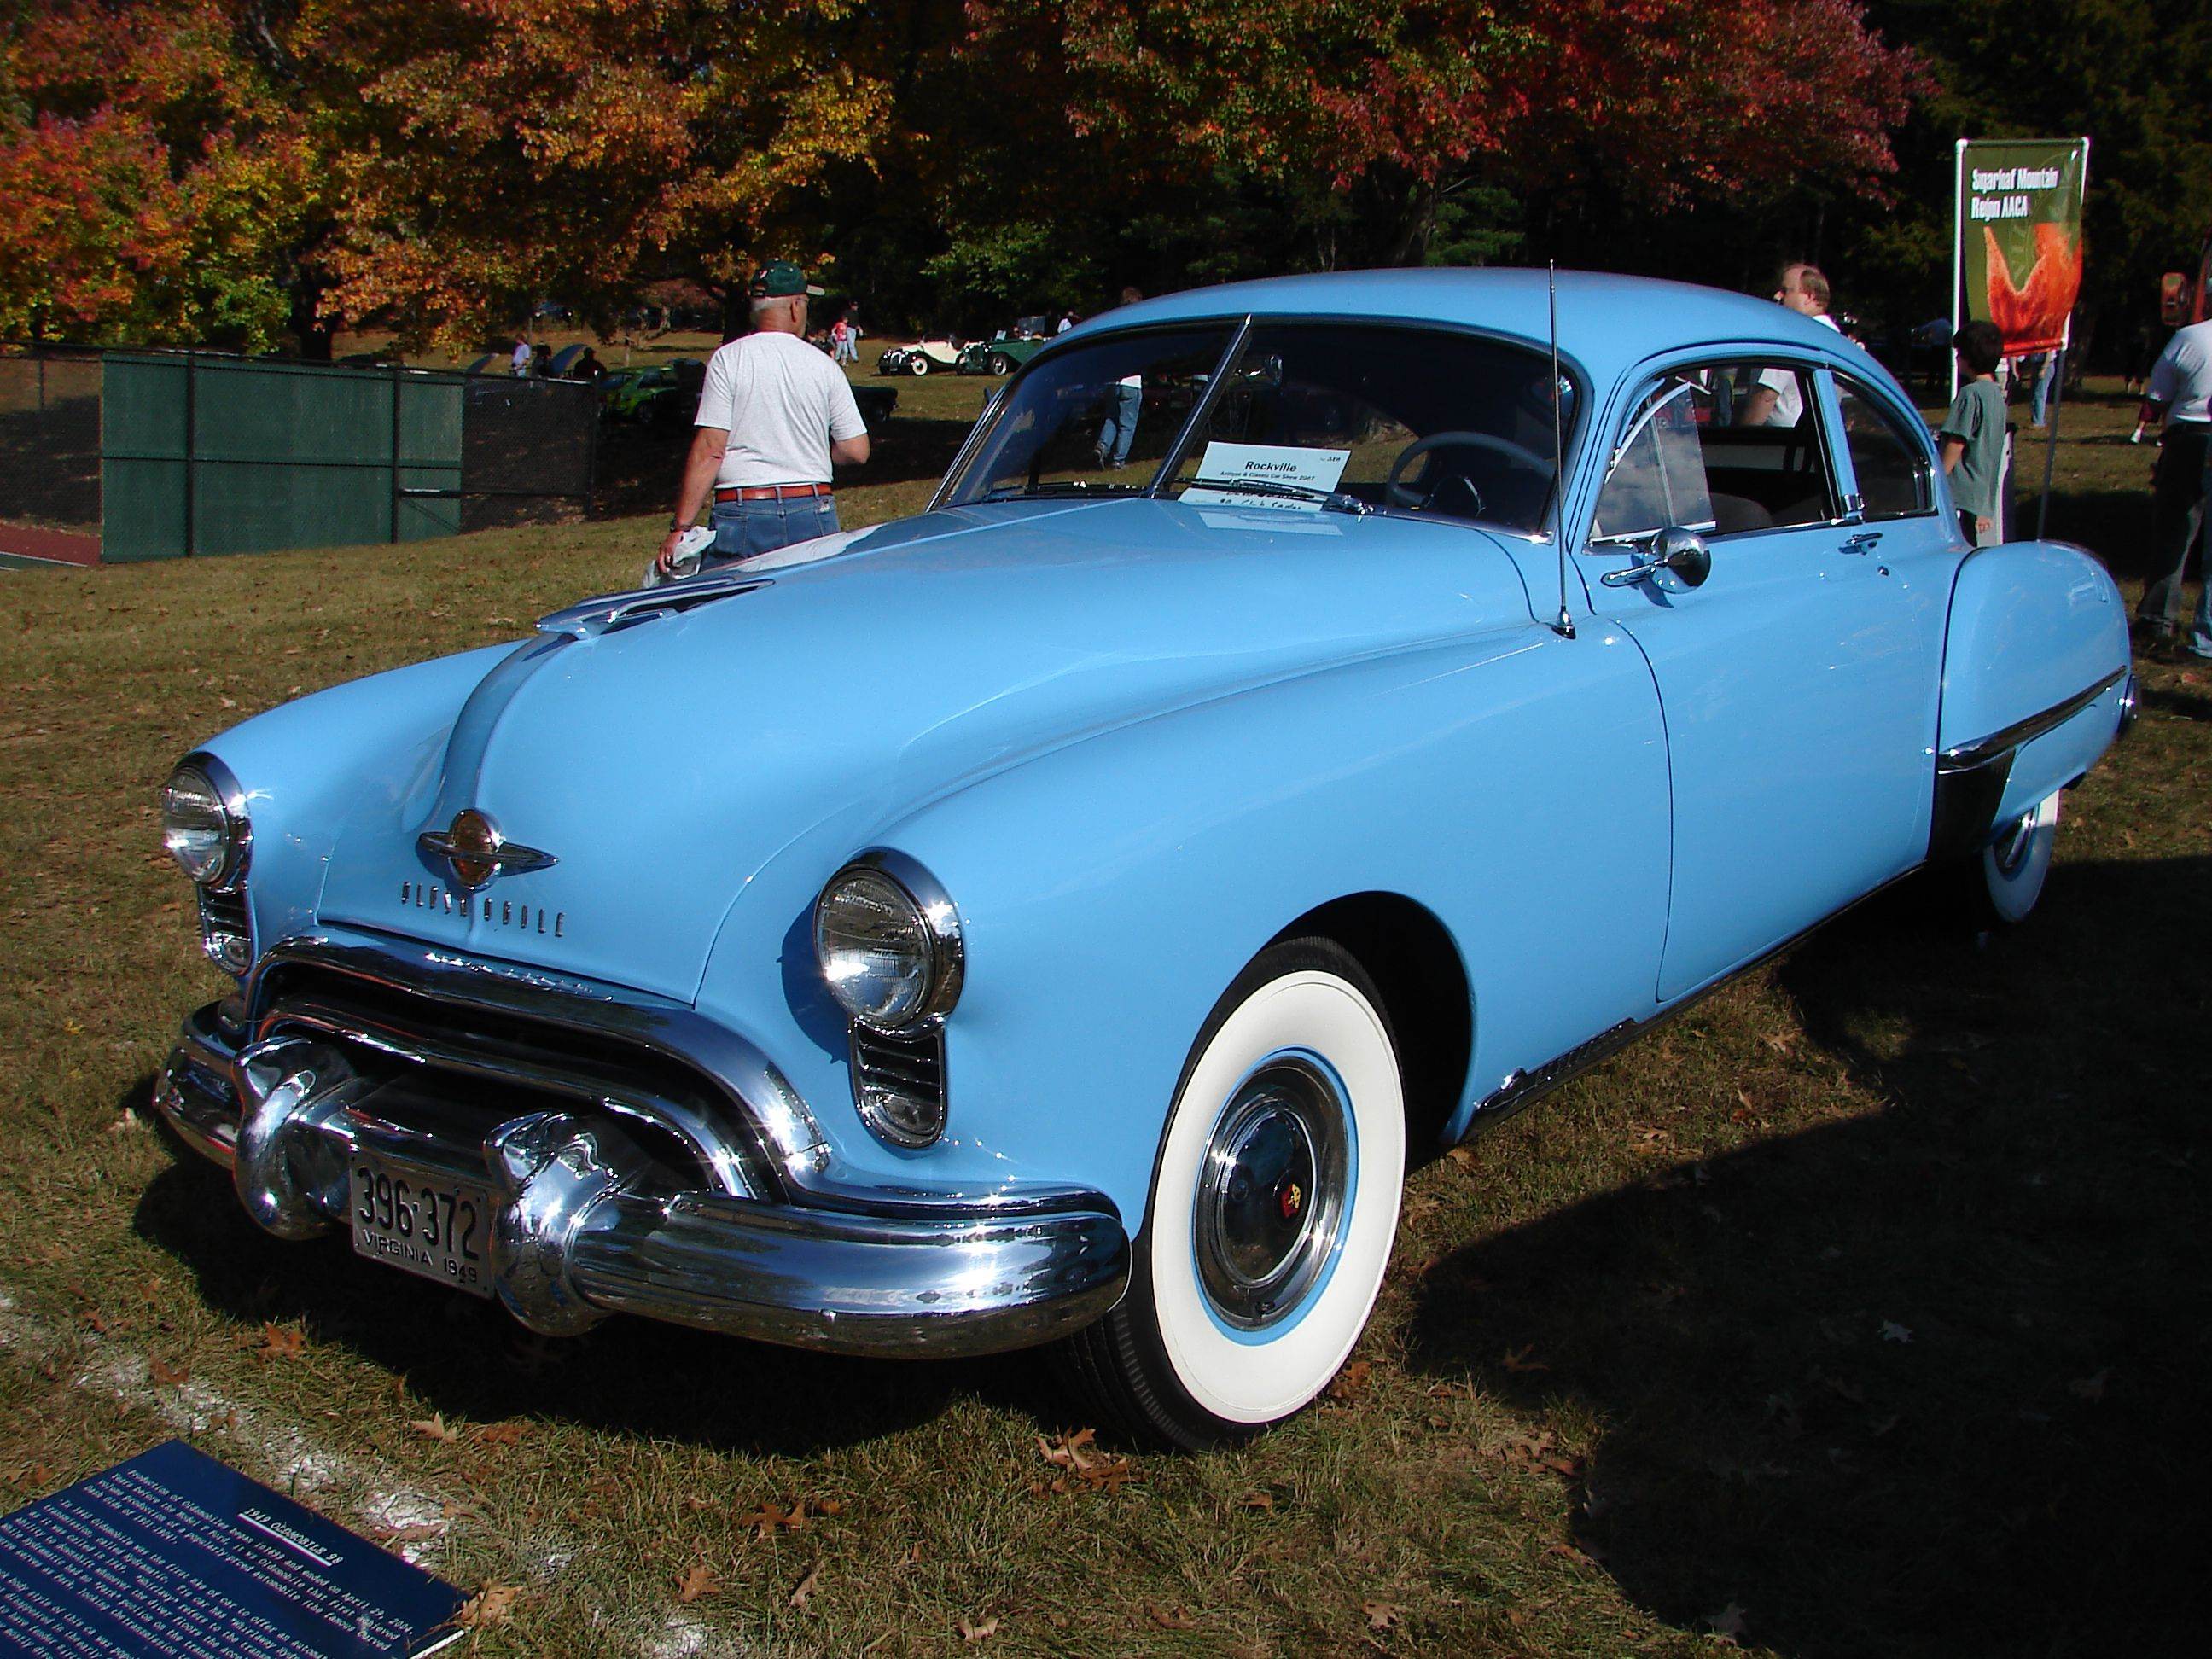 Rockville Antique Car Show 2017 - Rockville, Maryland